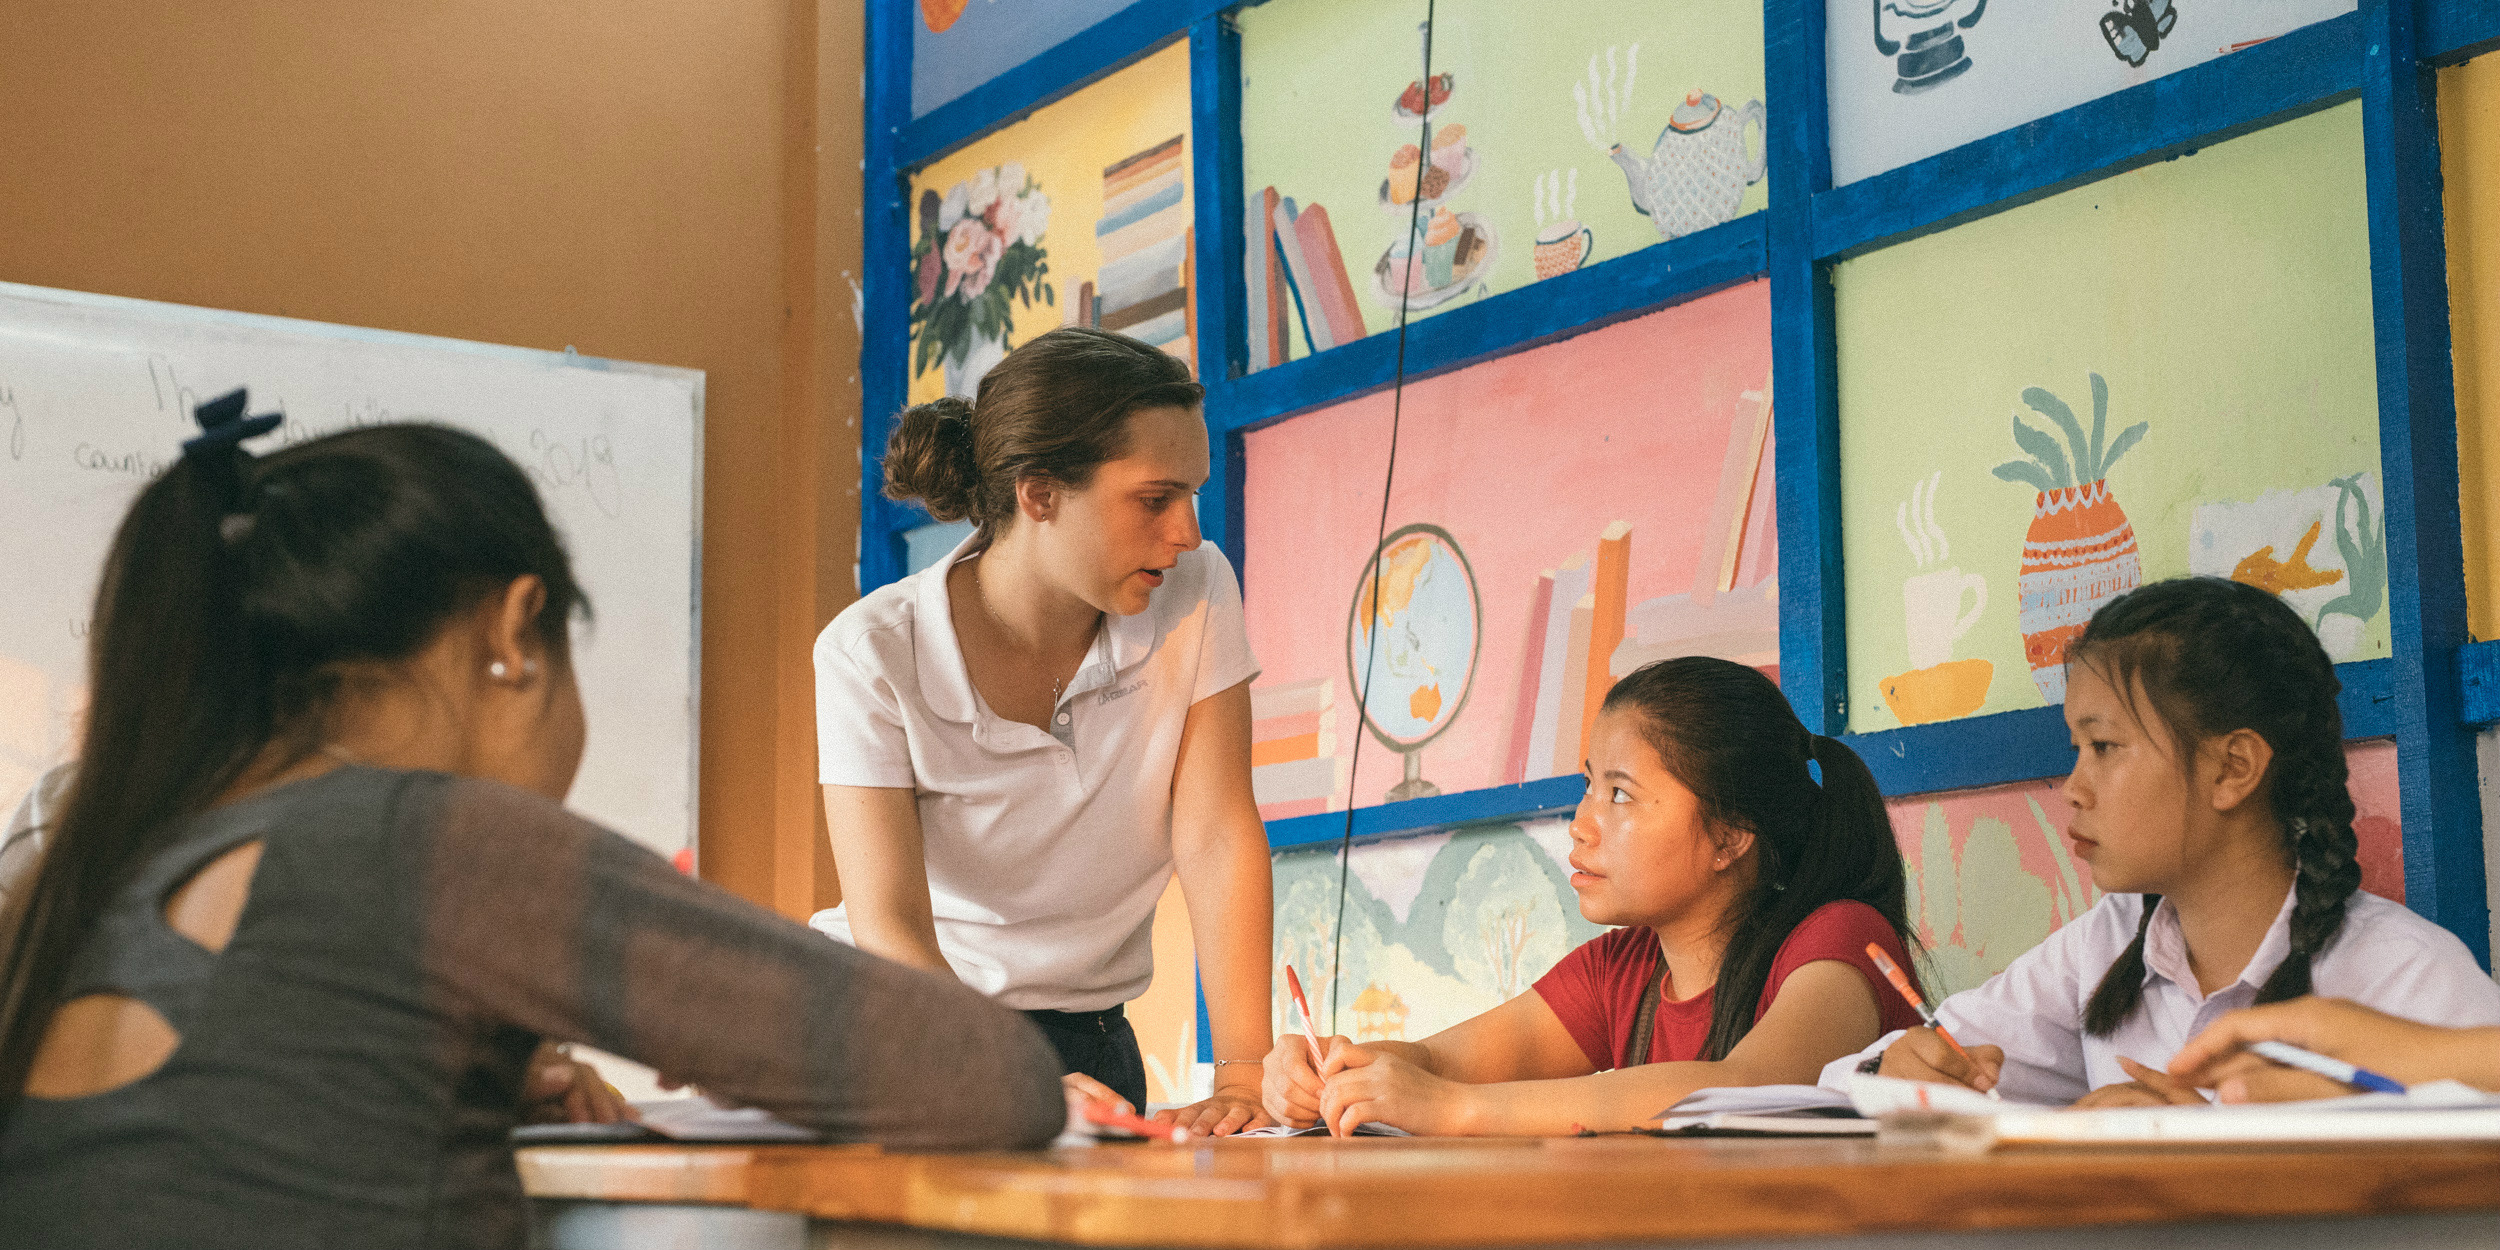 Learn a new language before travelling abroad to help you during your volunteer project.